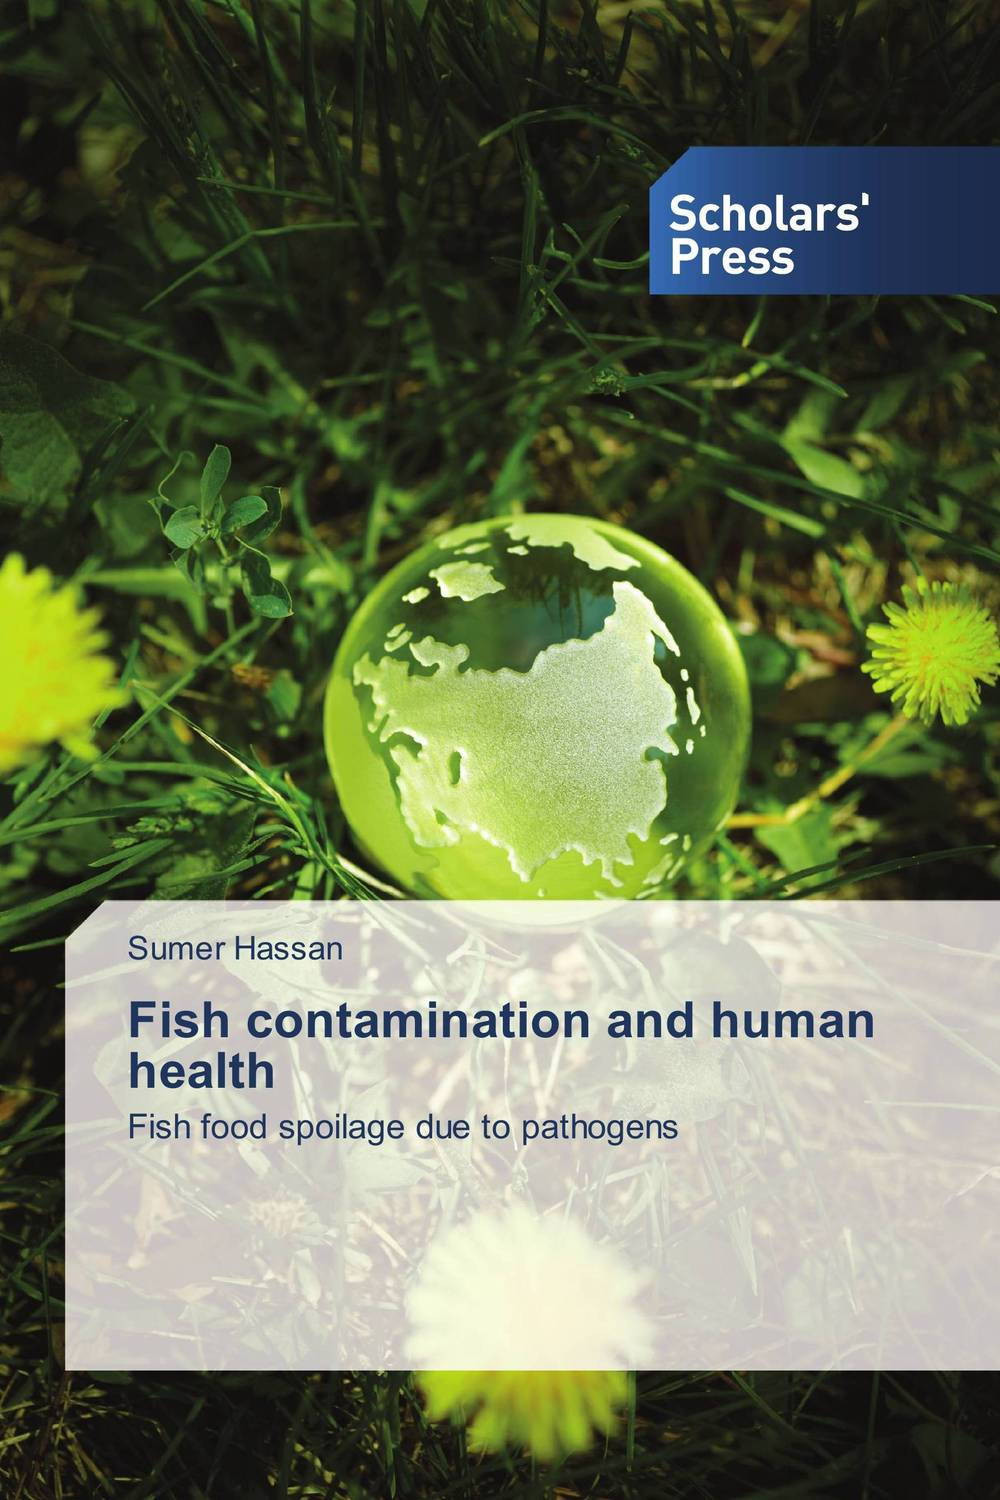 Fish contamination and human health chemical and microbiological hazards associated with fresh water fish